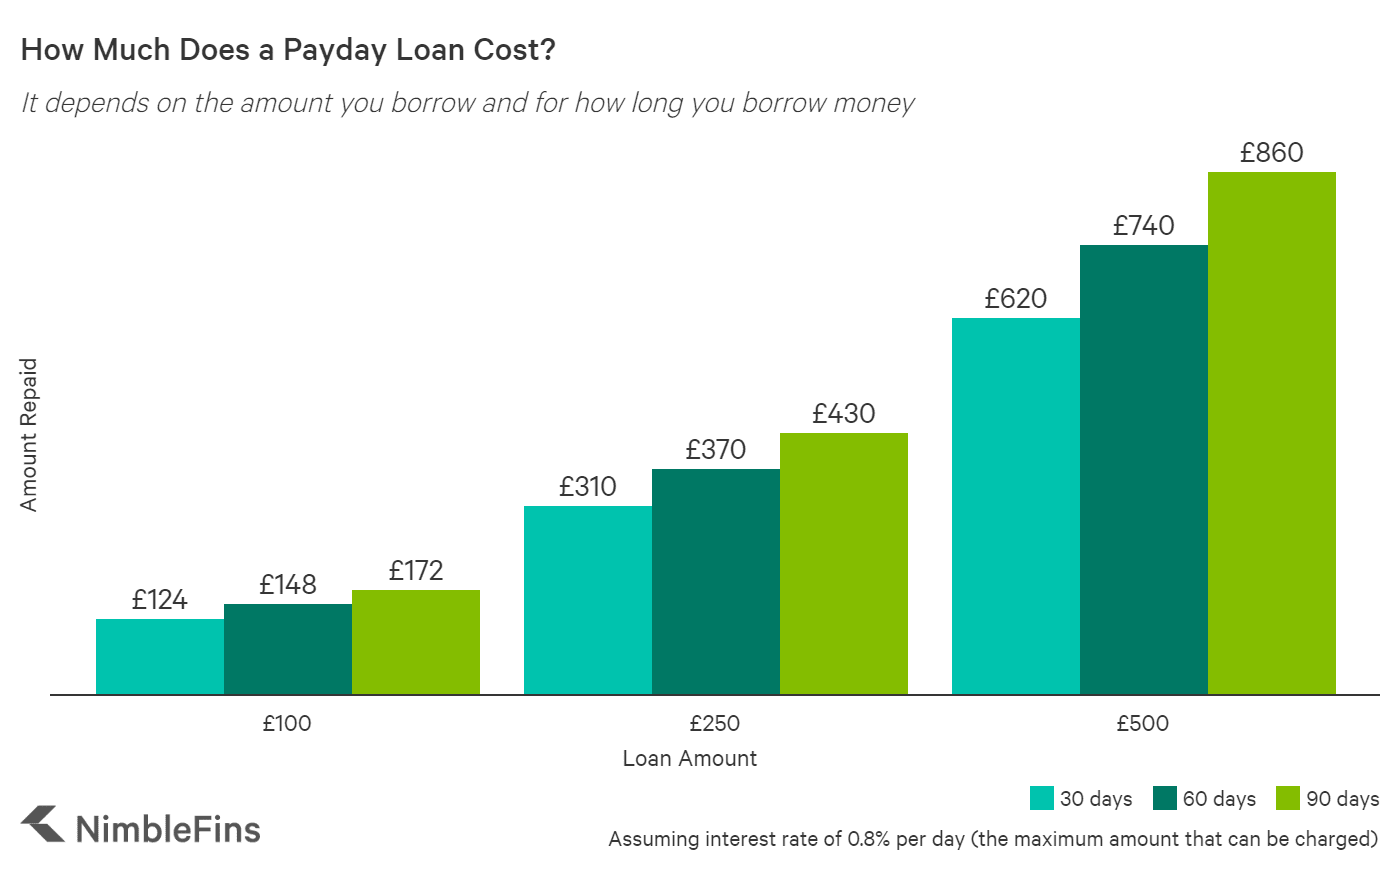 chart showing the cost of a £100 payday loan